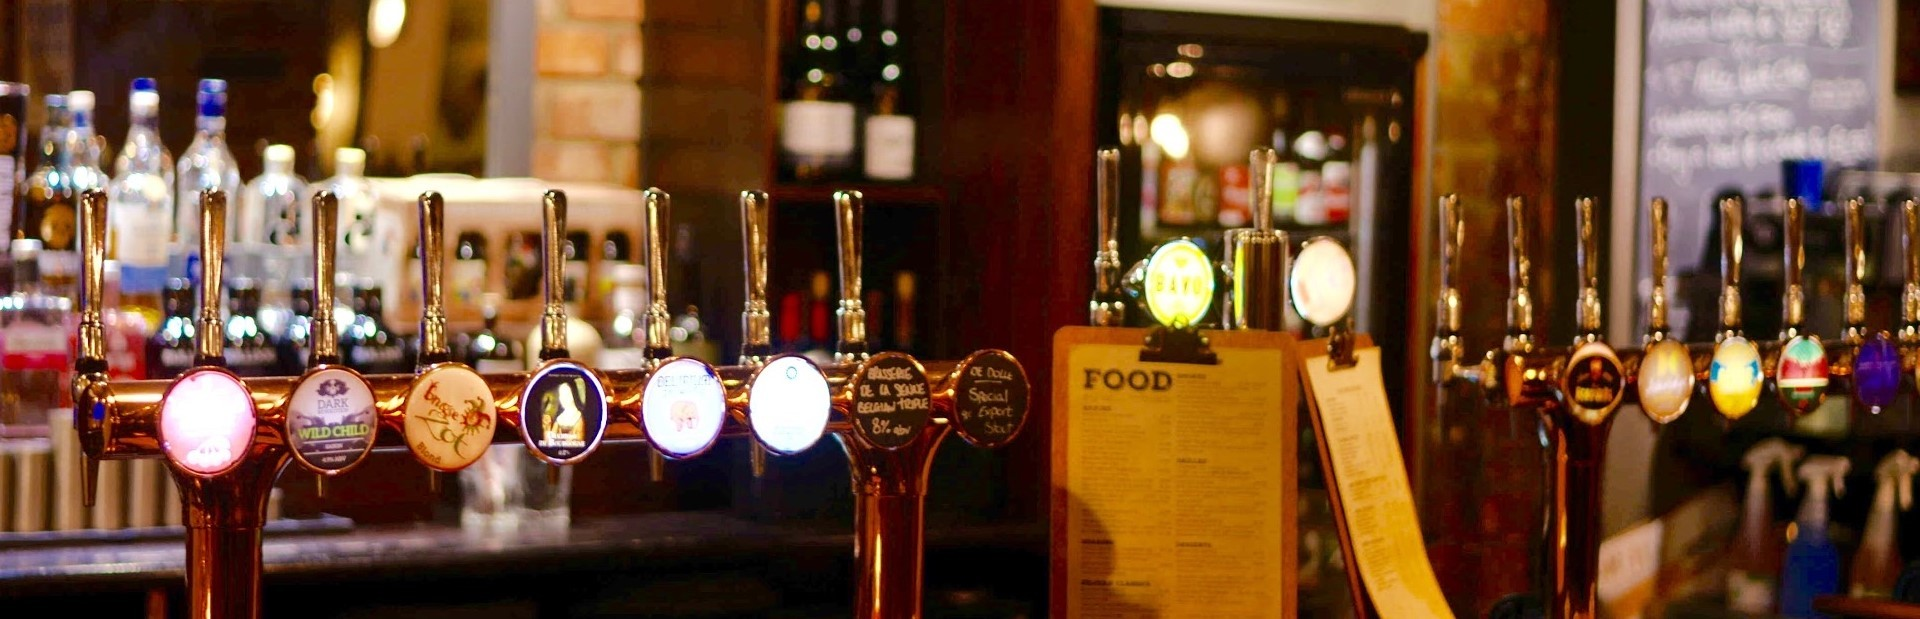 Get your Craft Ale fix in Southampton!